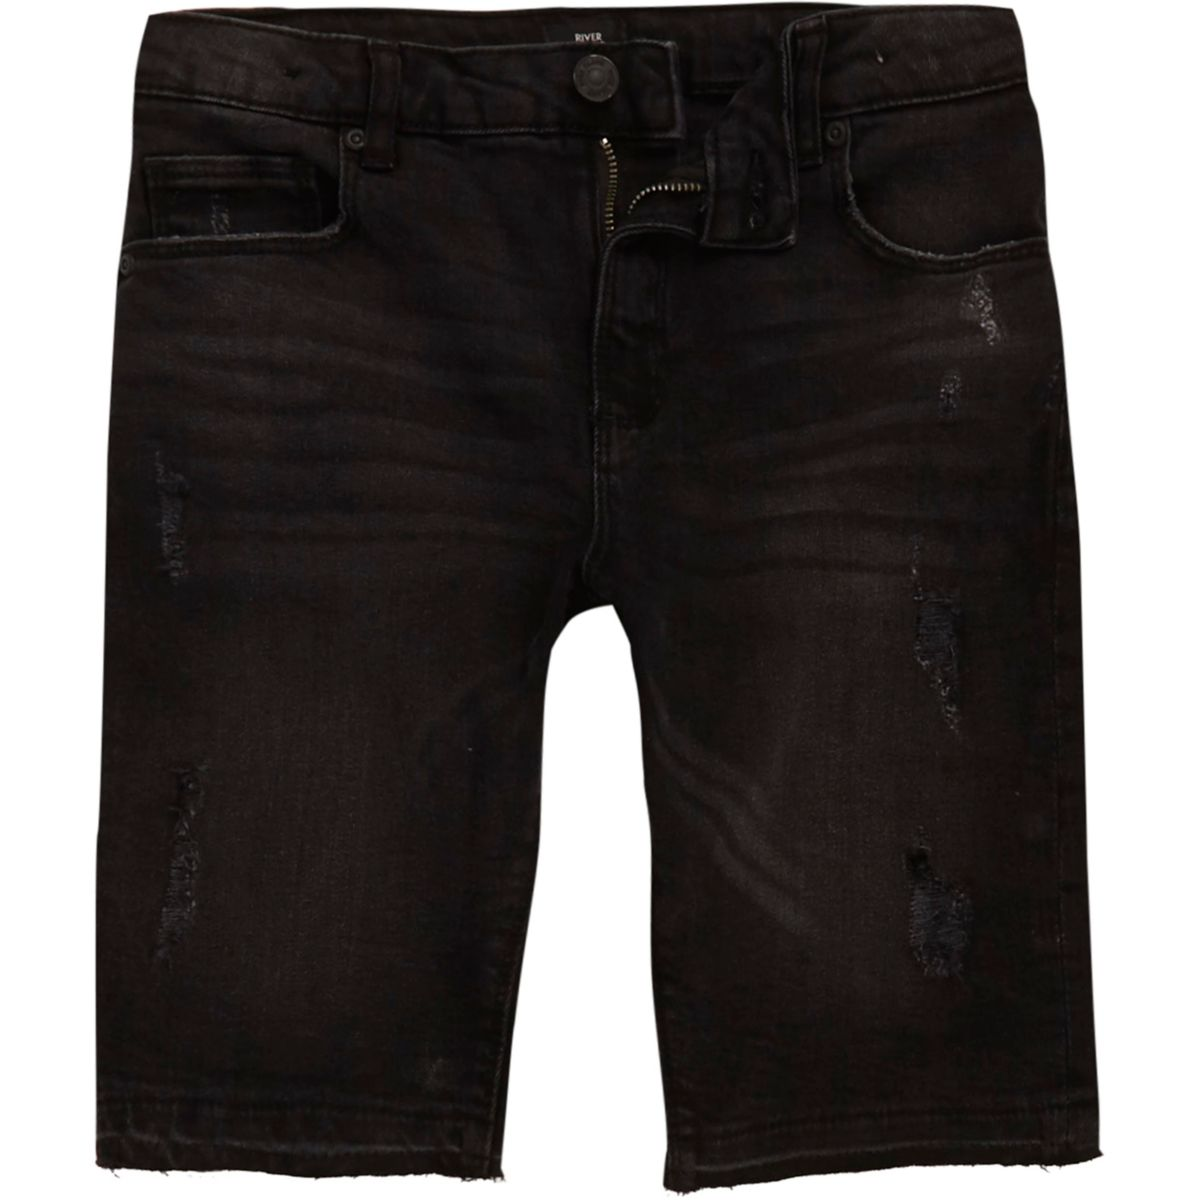 Boys black ripped denim shorts